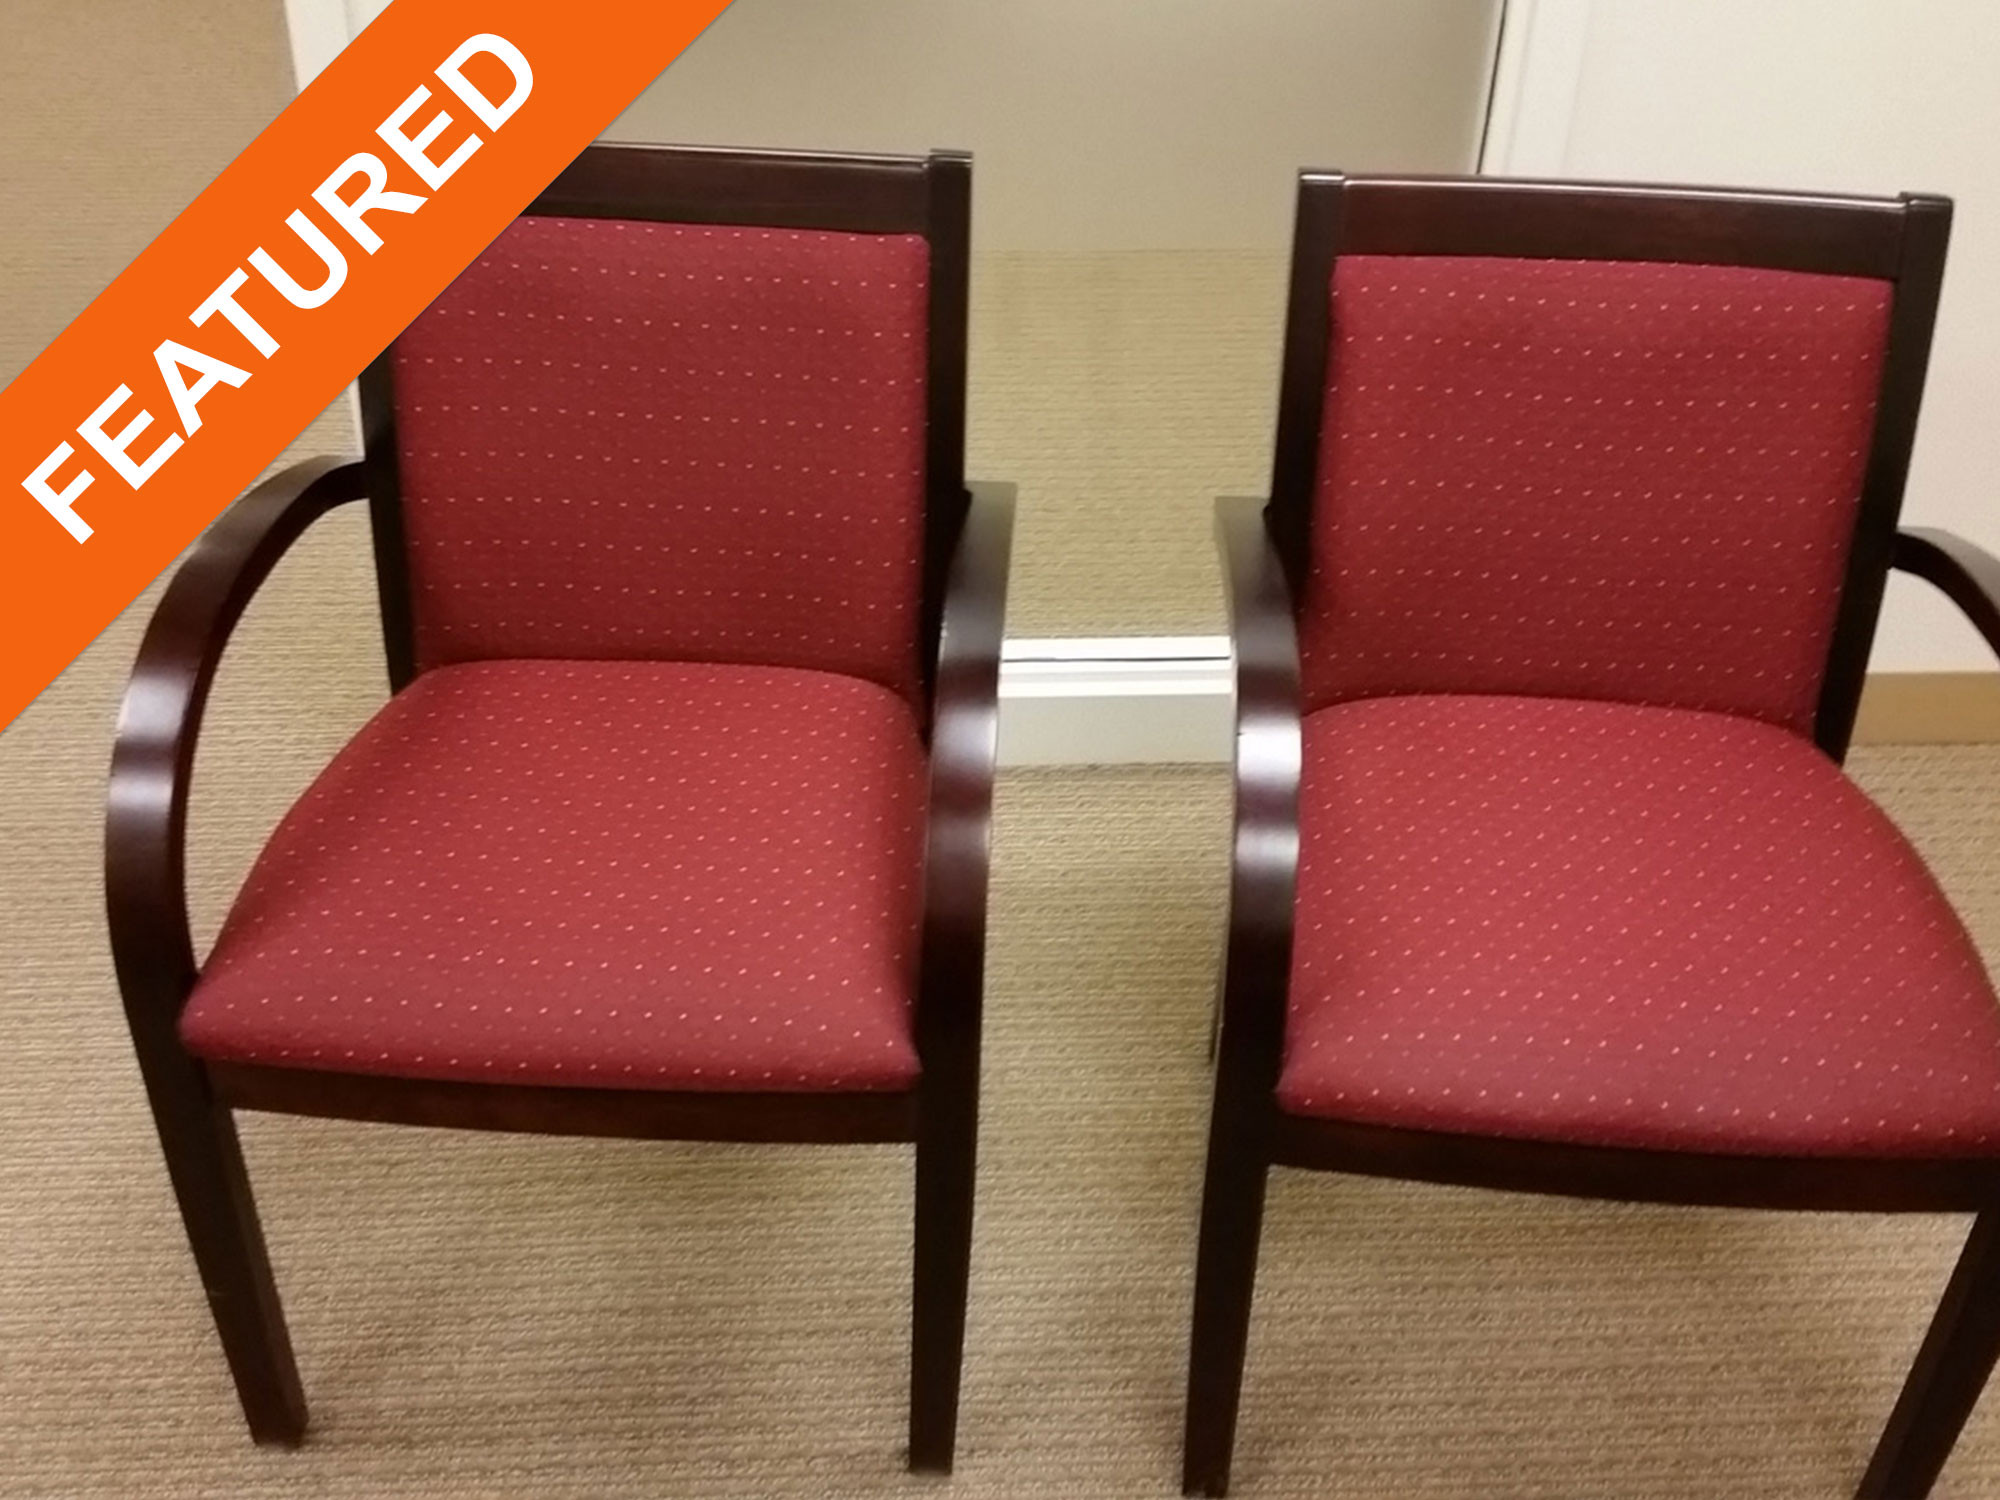 Best ideas about Office Furniture For Sale . Save or Pin Used fice Furniture for Sale by cubicles Now.